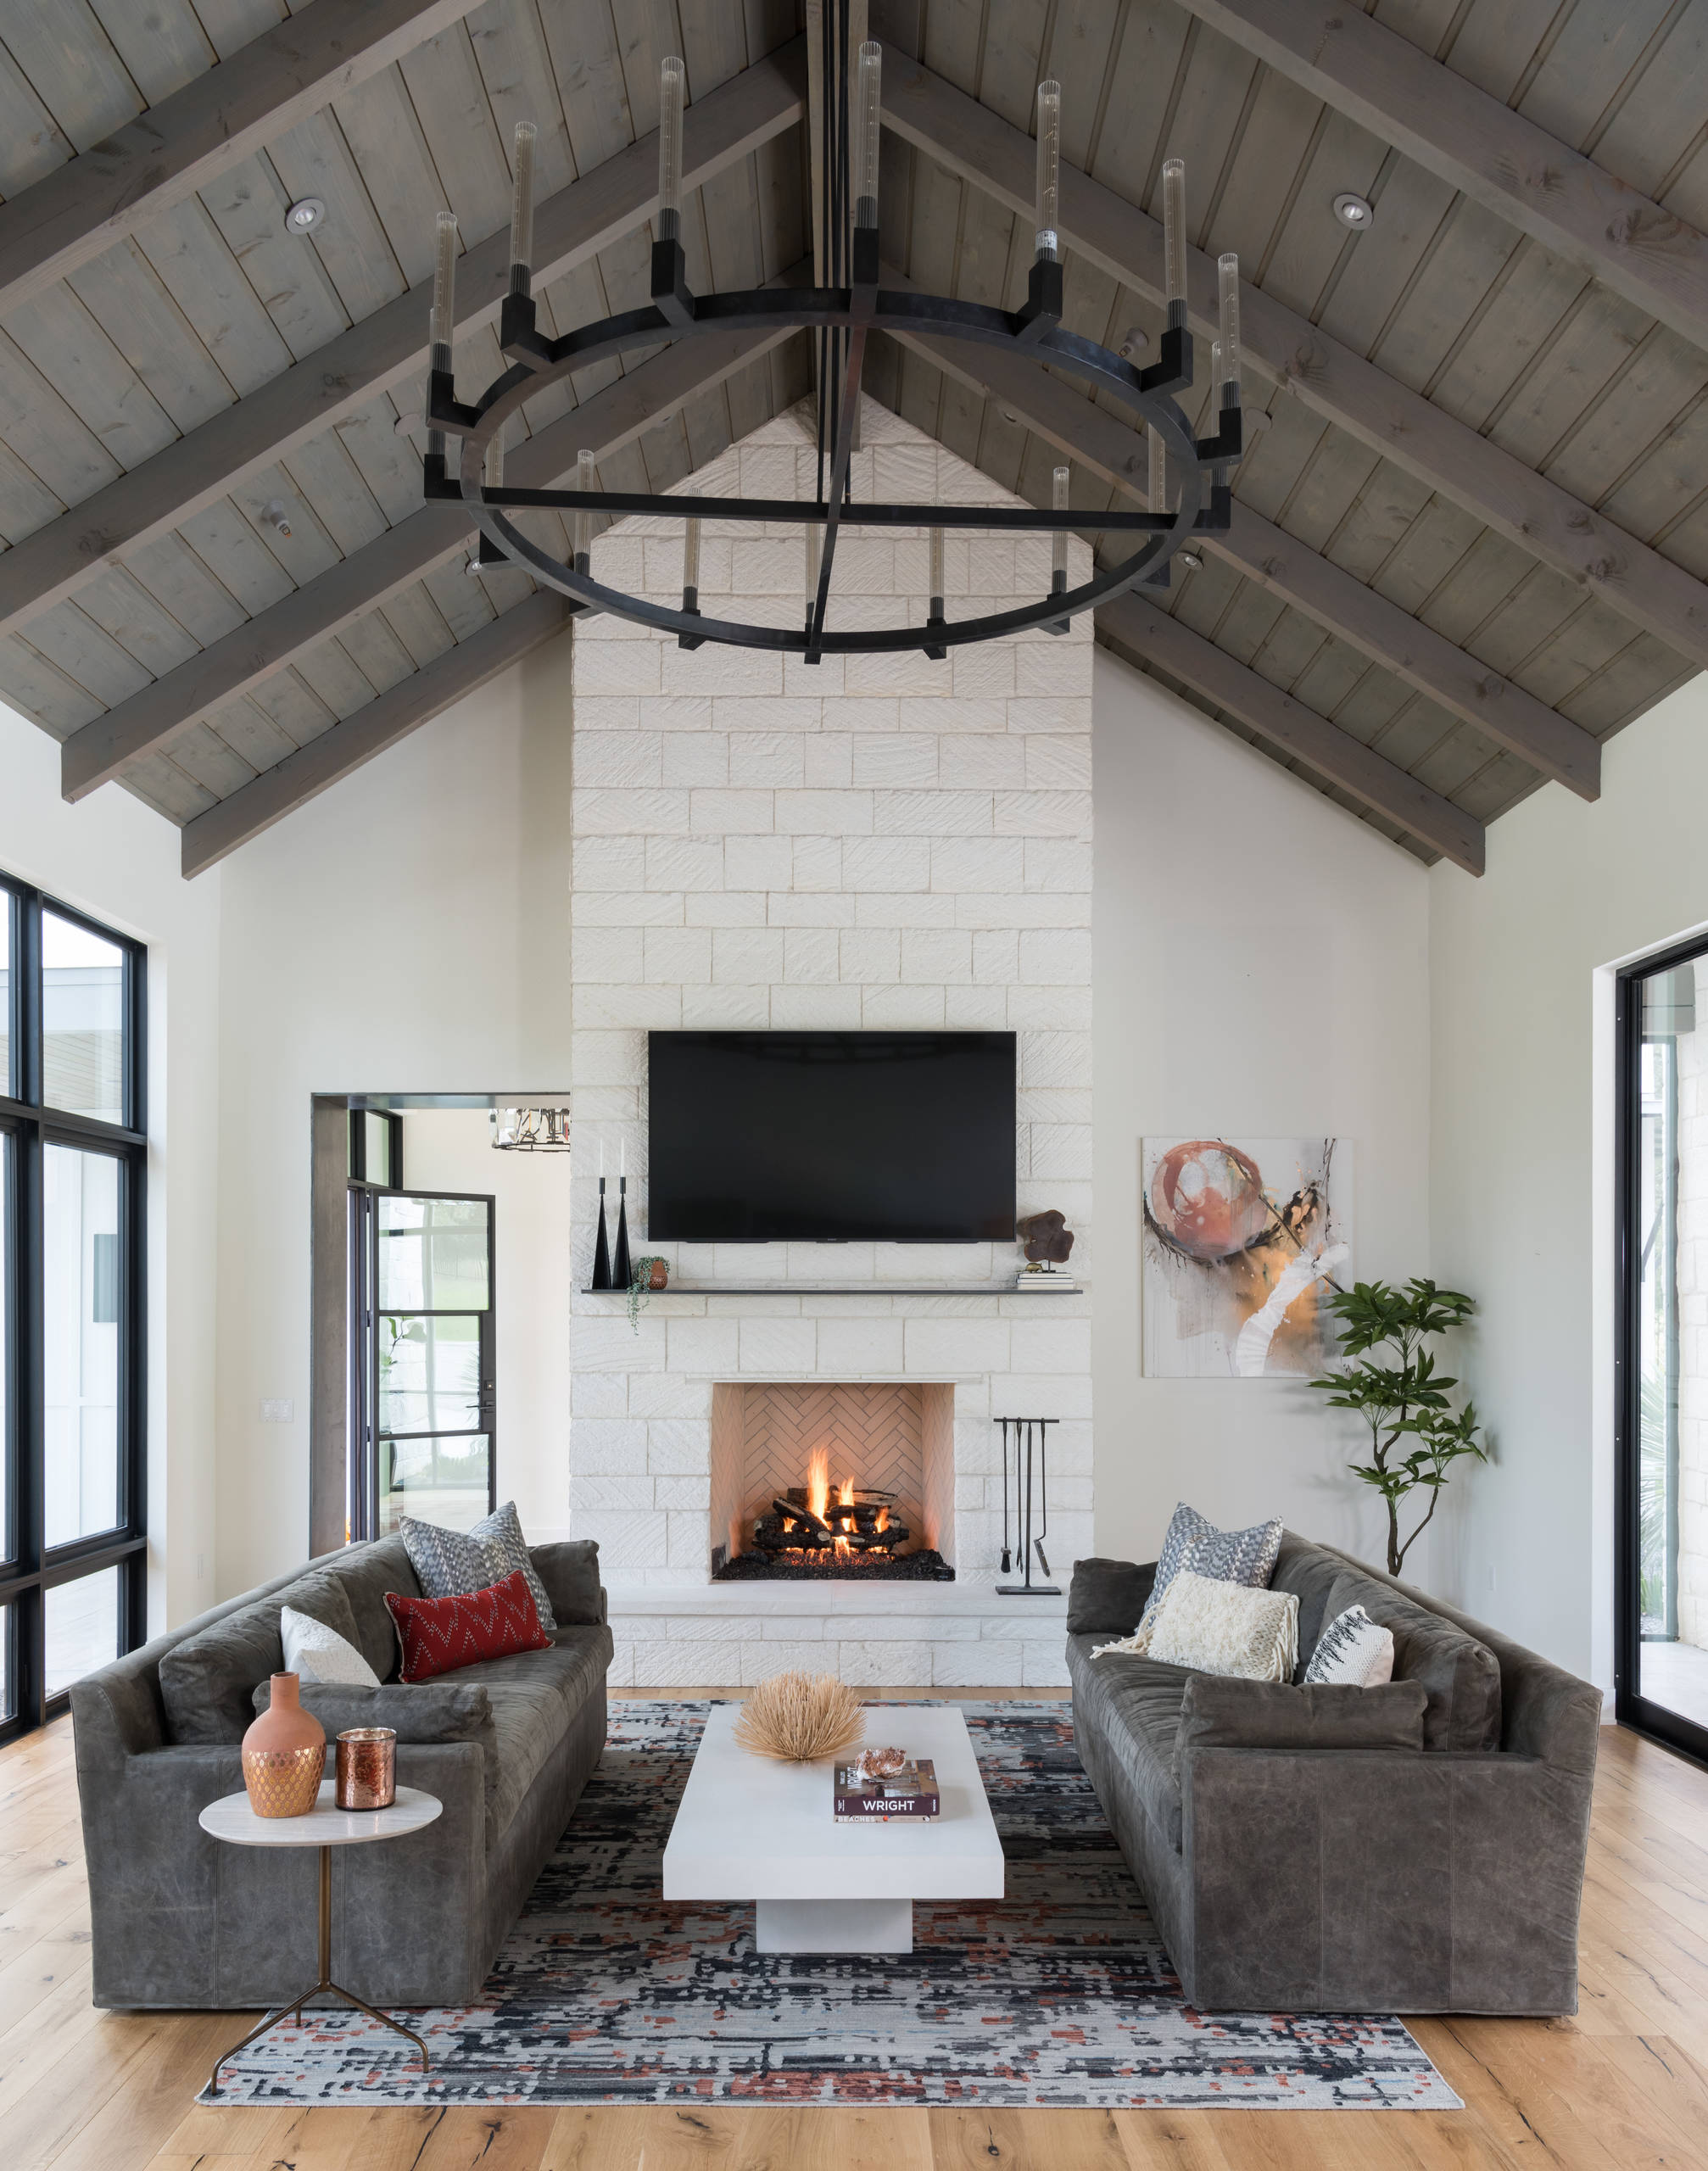 Floor to ceiling fireplace Farmhouse Living Room limestone fireplace metal chandelier metal mantle vaulted wood ceiling stone fireplace and a wall-mounted tv